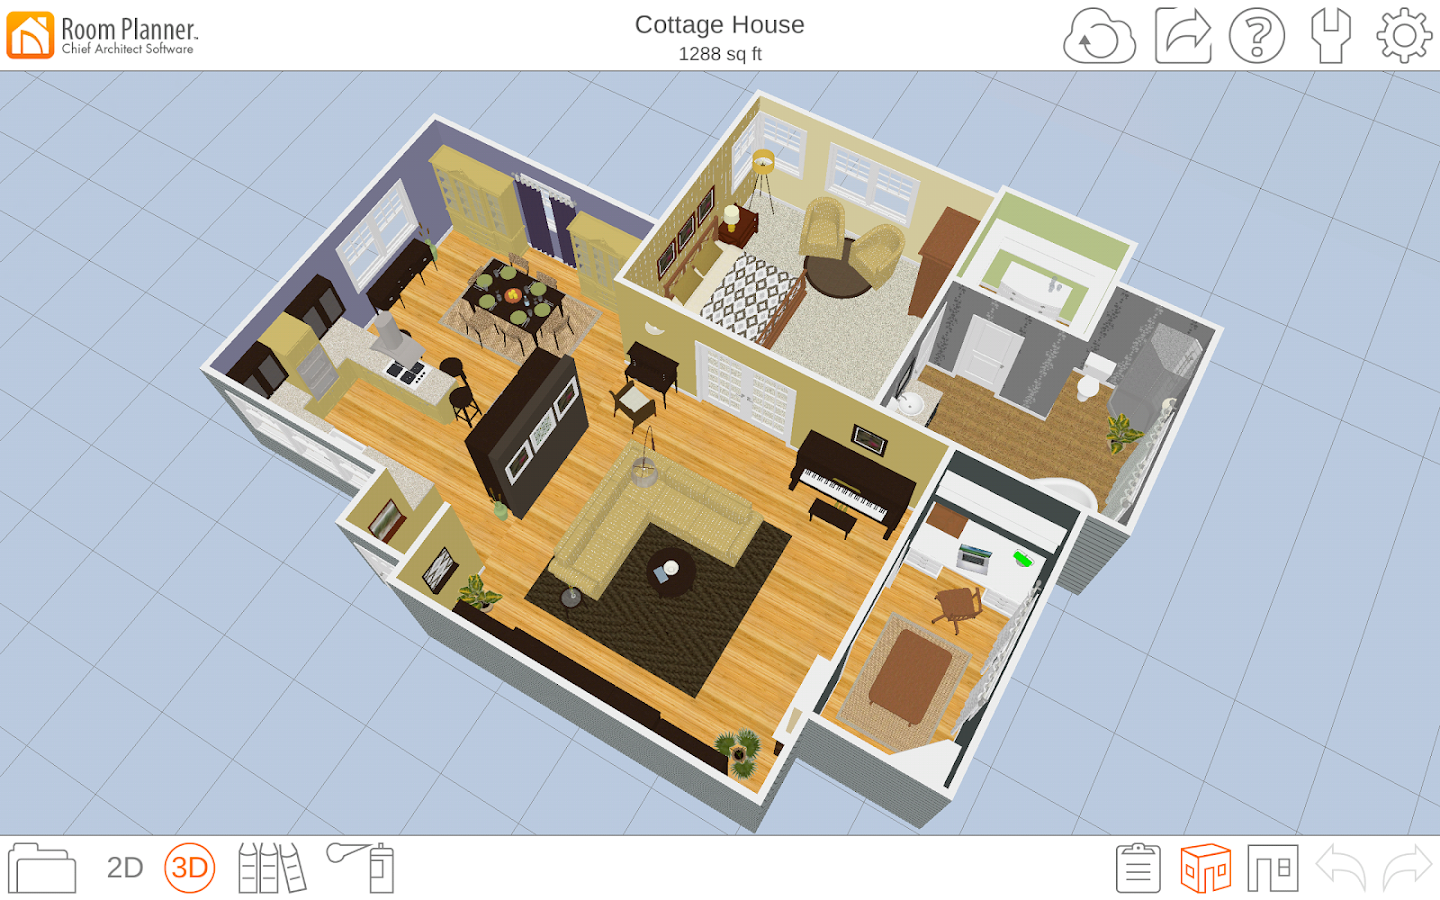 Room Planner Home Design 4.3.0 APK Download - Android Productivity ...